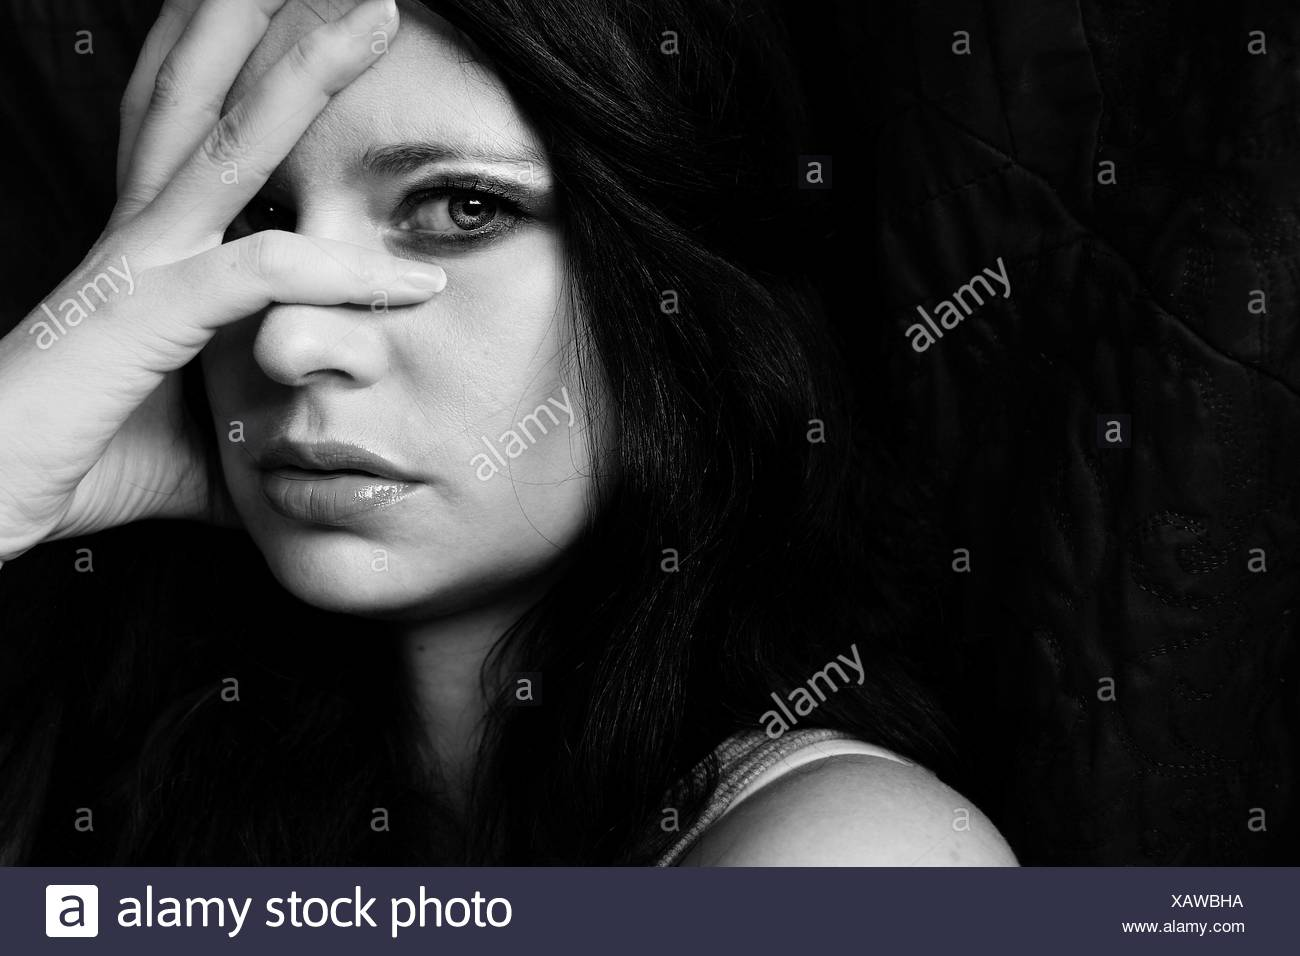 Close-Up Portrait Of Thoughtful Young Woman With Hand On Face Against Black Background - Stock Image